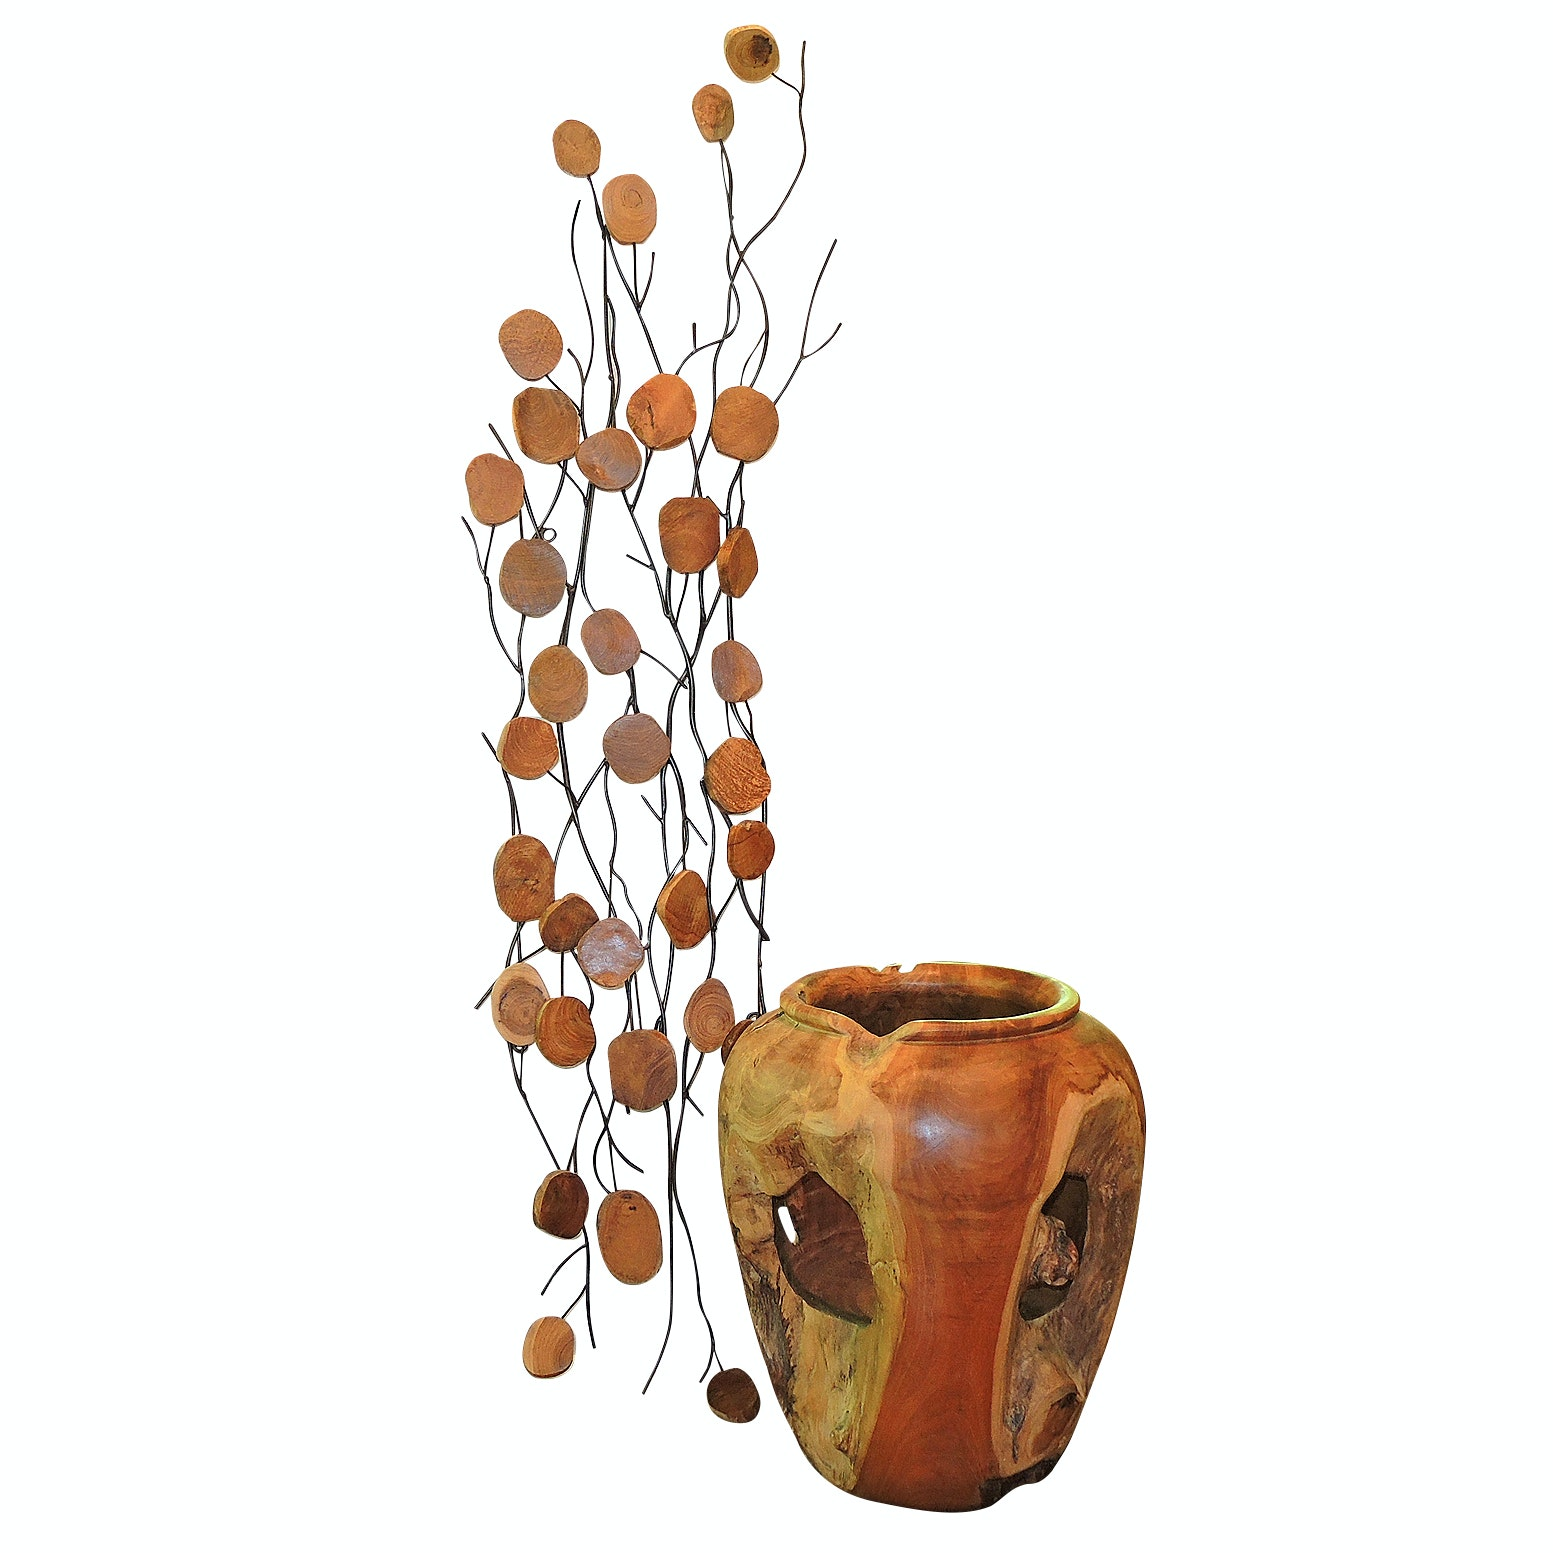 Natural Teak Root Decorative Planter and Polished Wood Medallion Wall Sculpture